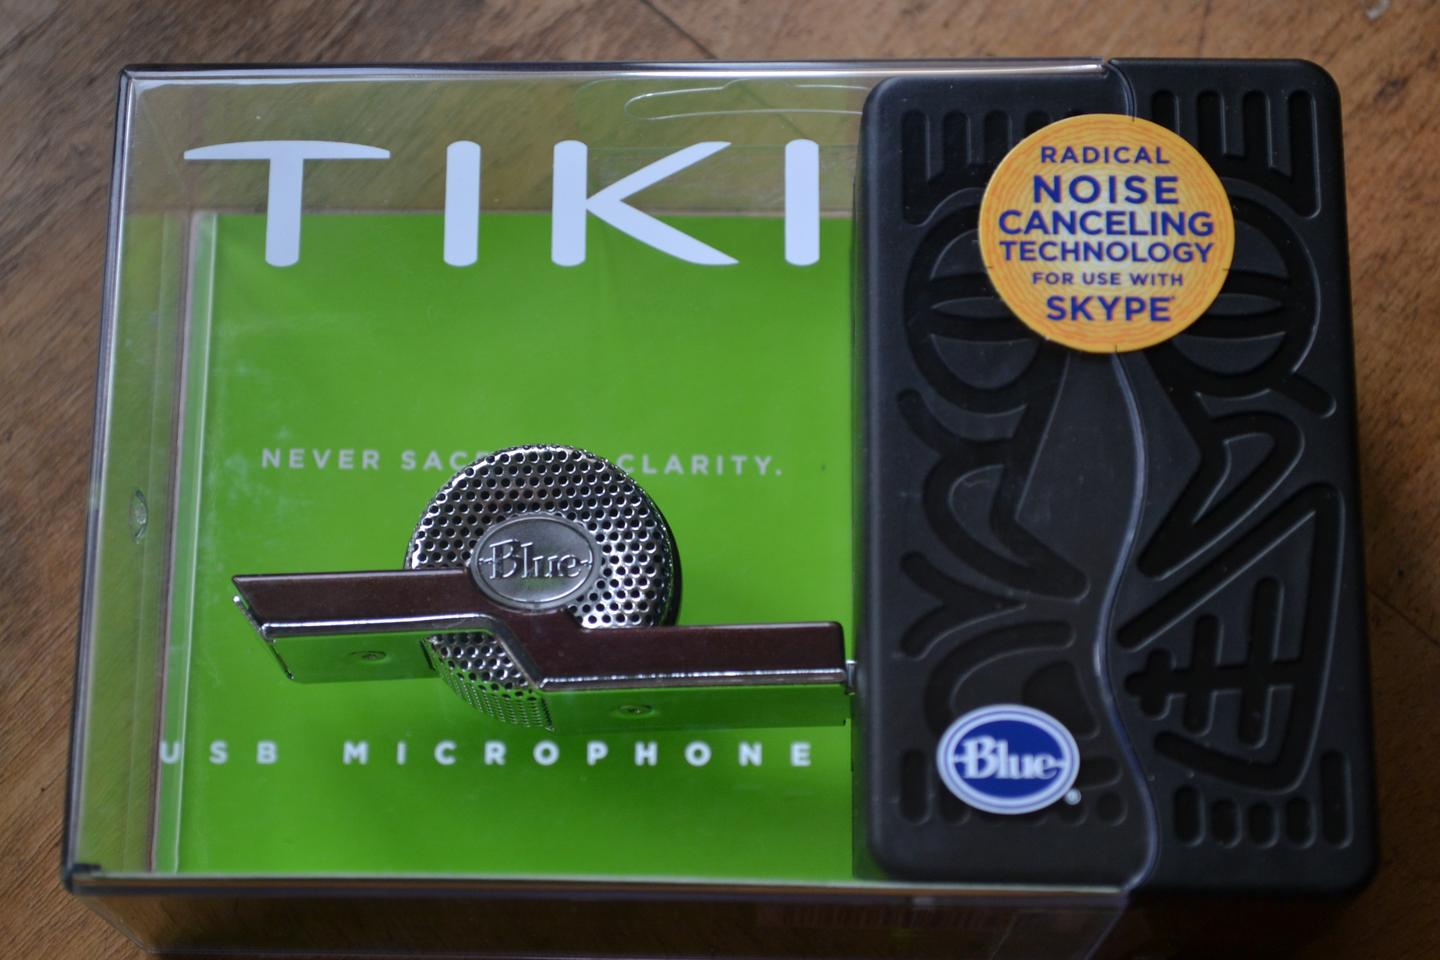 Blue Microphone has finally released the Tiki